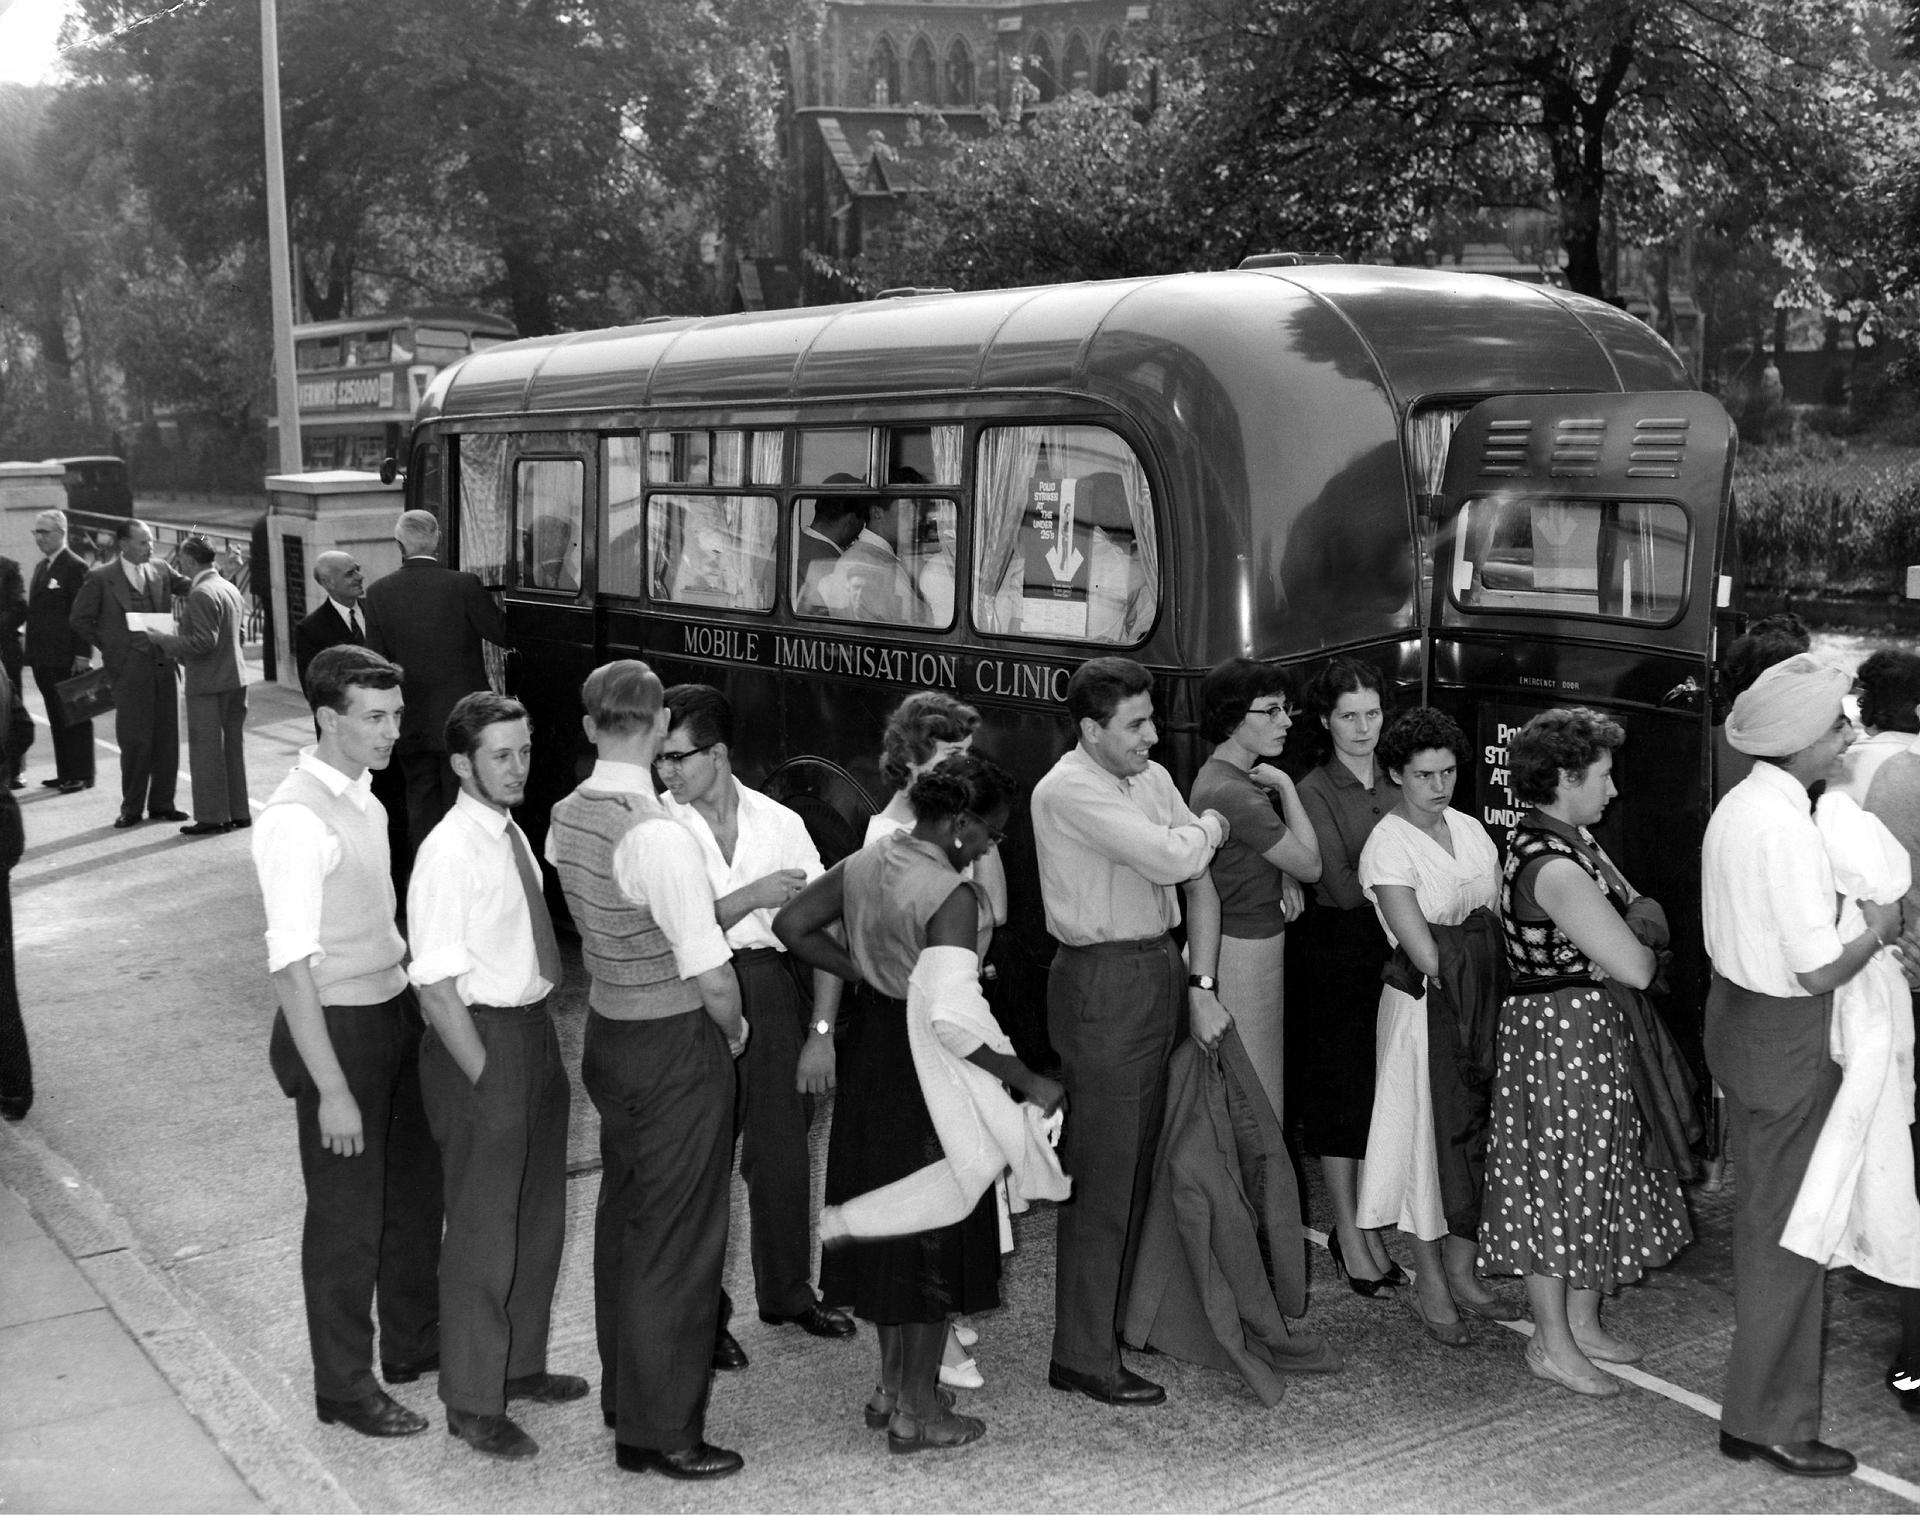 Factory workers line up to have the first treatment at the new Mobile Immunisation Cliinic, outside Cossor House, Highbury Grove, London N5 1959 A mobile clinic has been made available by the LCC to make it easy for young people working in factories and offices in London to be vaccinated against poliomyelitis. A school bus has been converted at a cost of about £300 and has started to make it's calls this week in North London, whee an anti-Polio campaign is in progress.